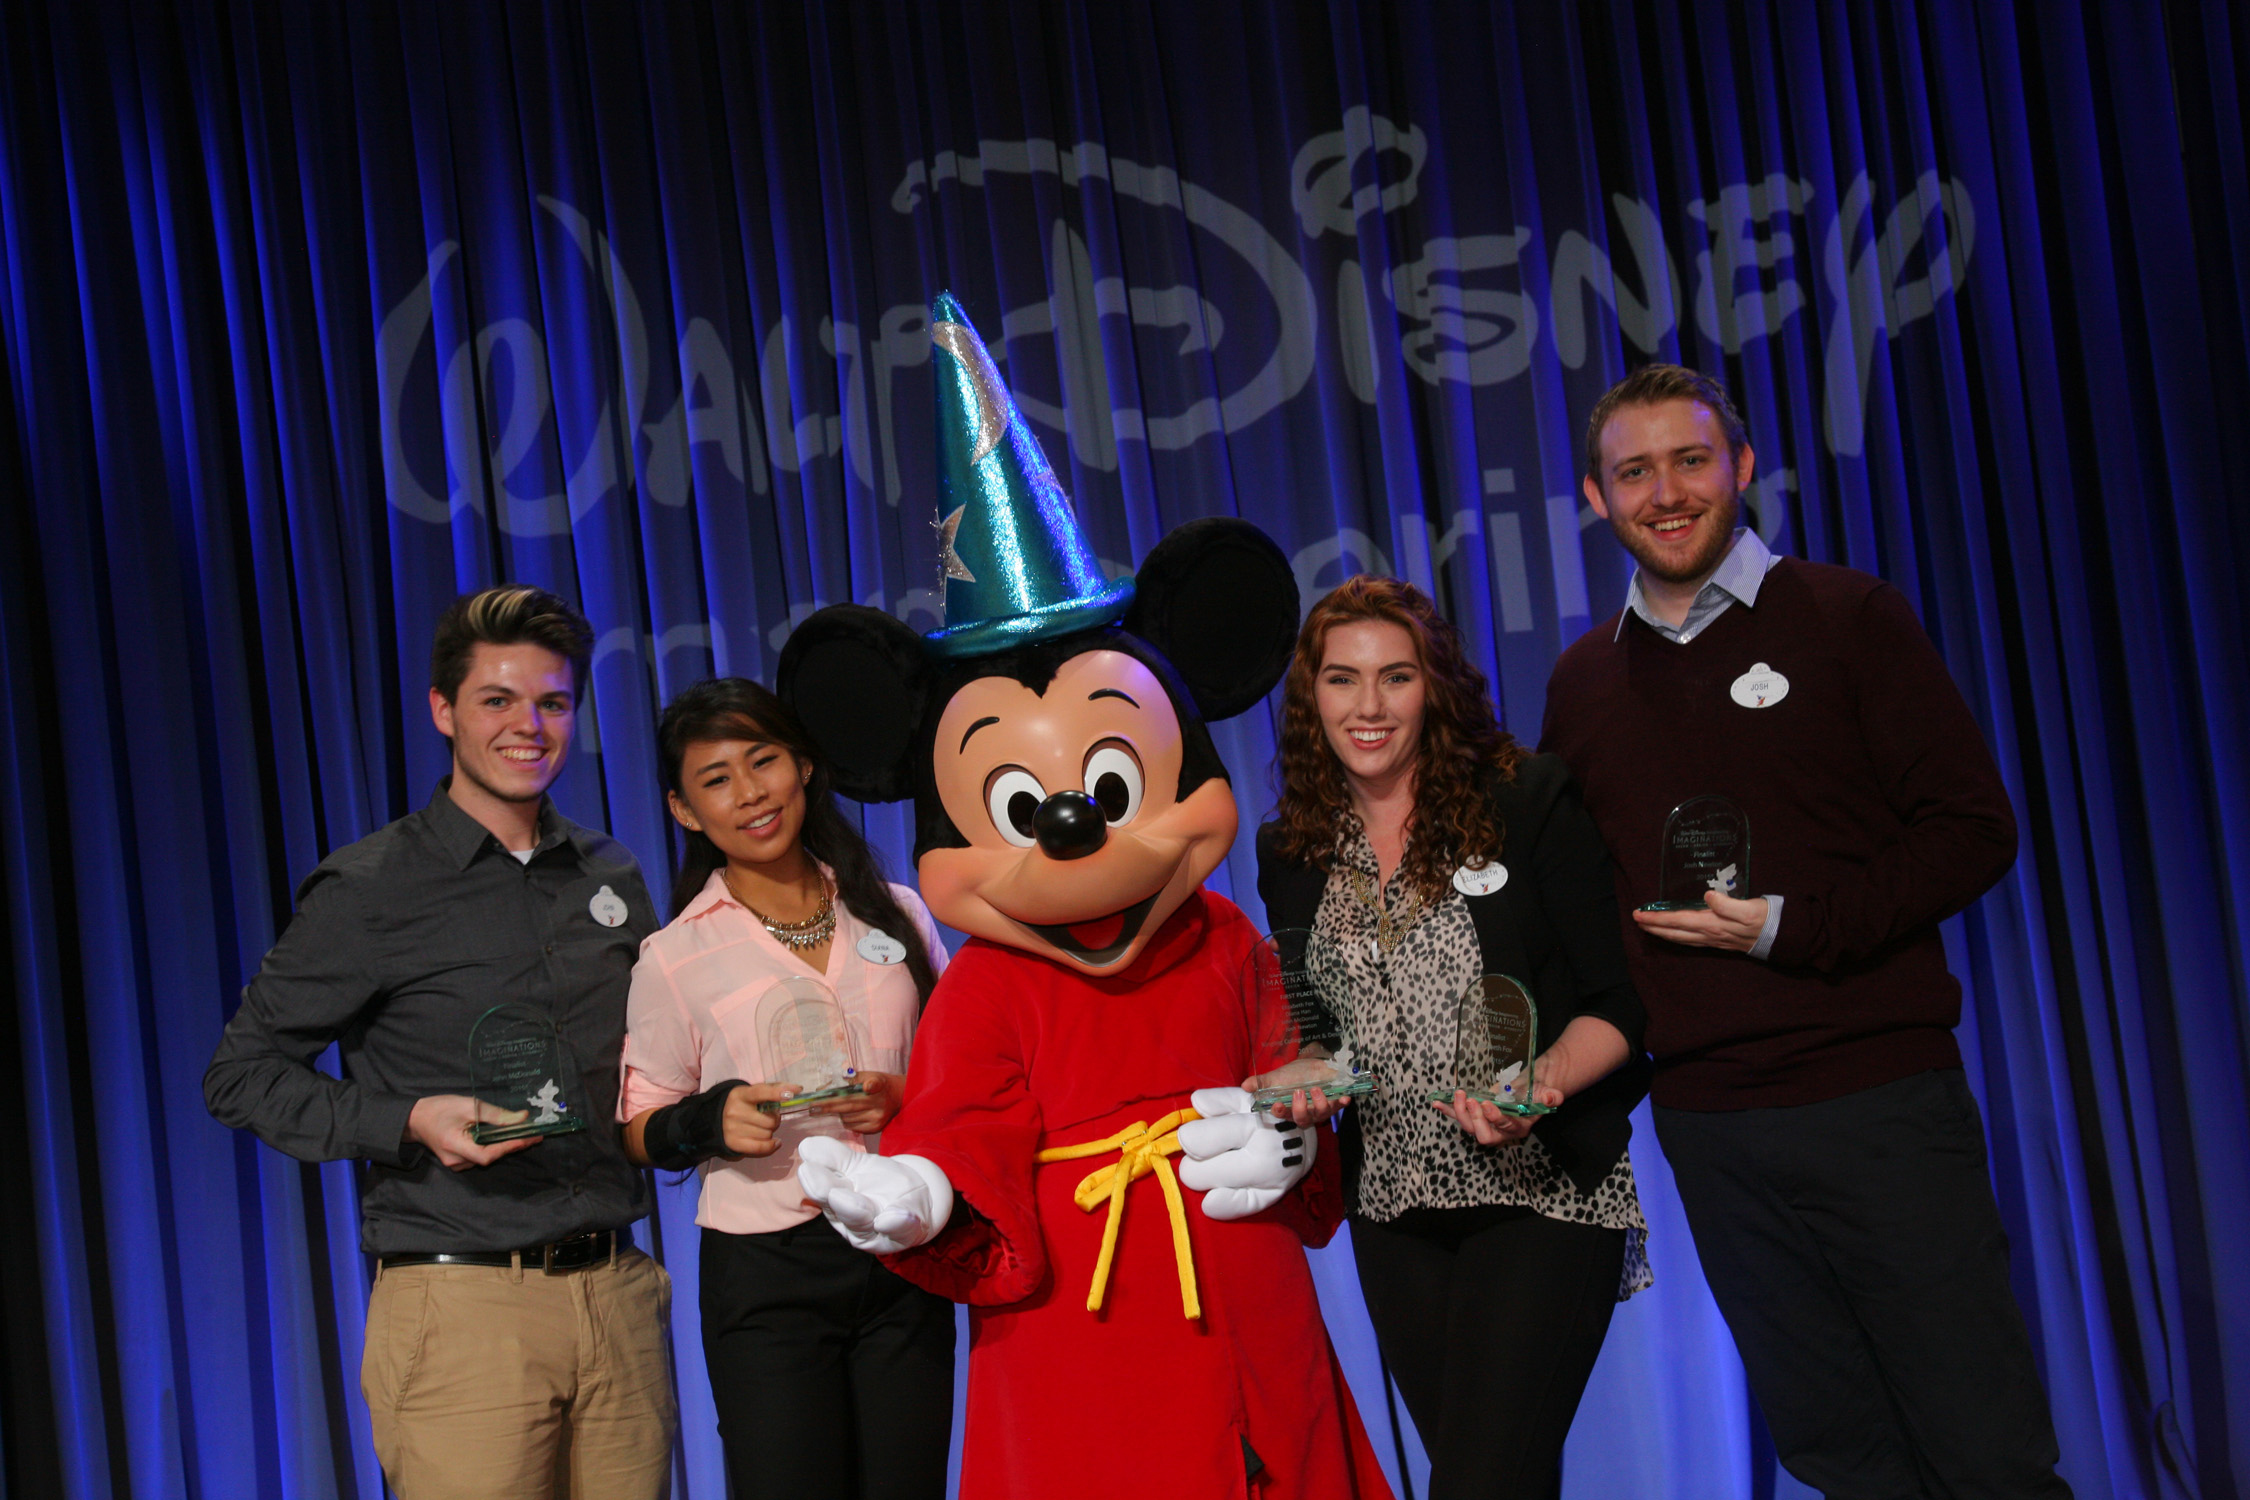 Imaginations First Place Winning Team From Ringling College Of Art And Design With Mickey Mouse John McDonaldDiana Han Elizabeth Fox